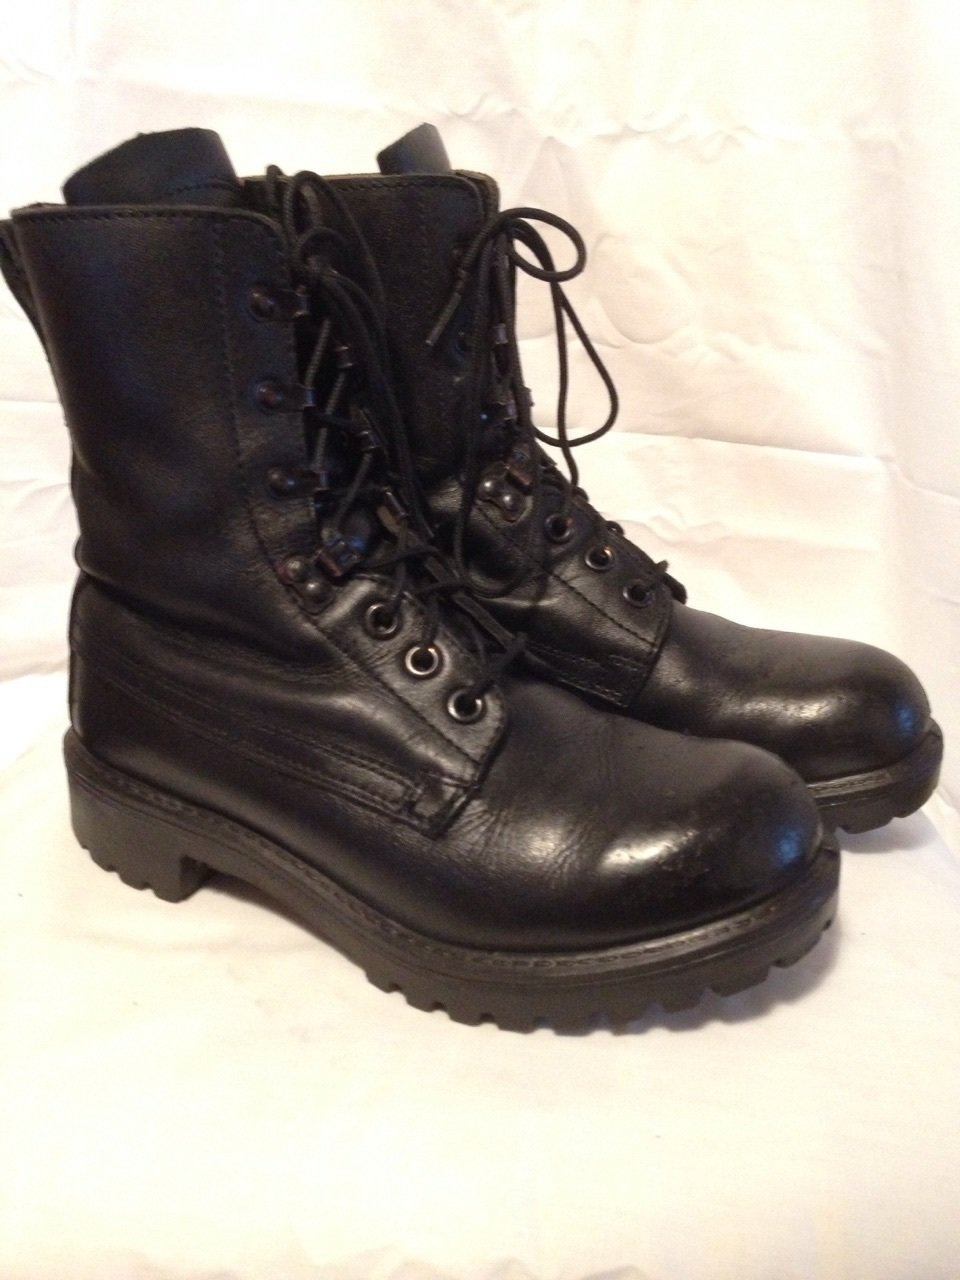 British Army Assault Boots Size 10l